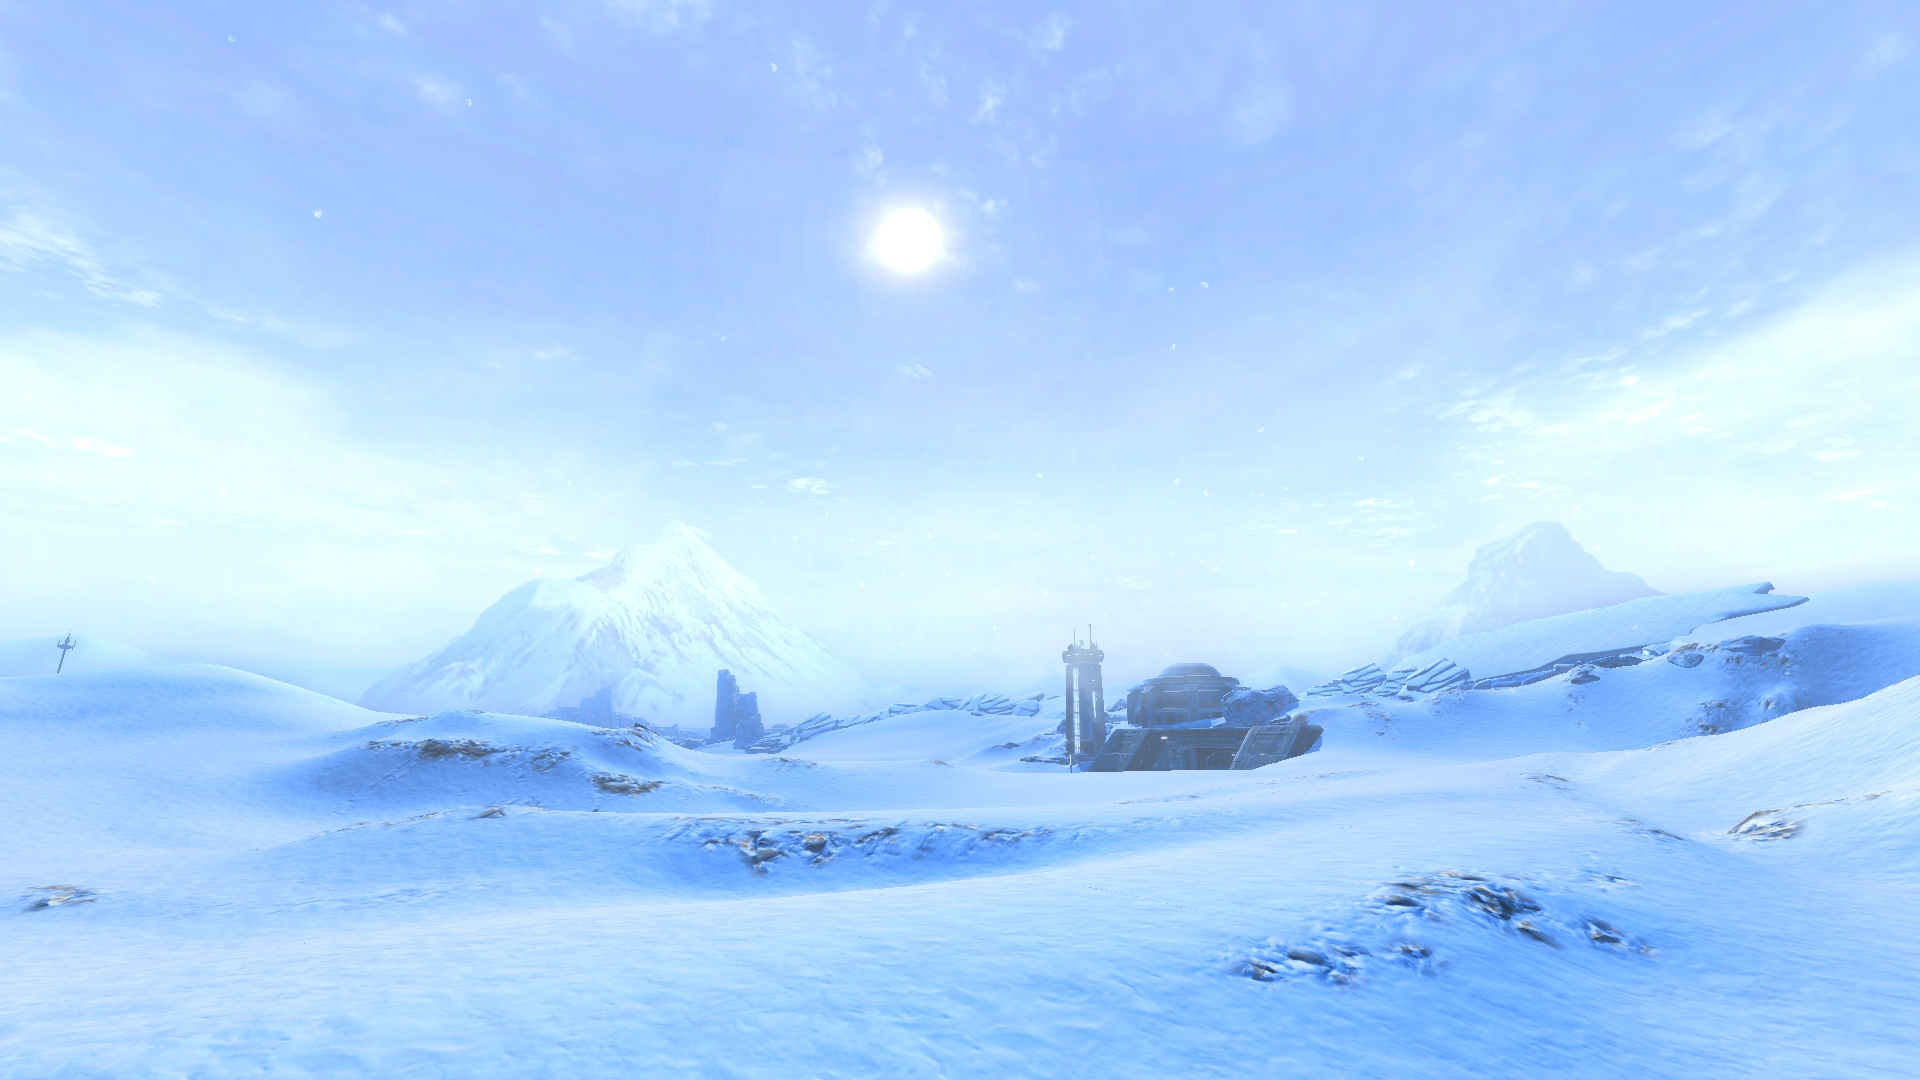 Hoth screenshot